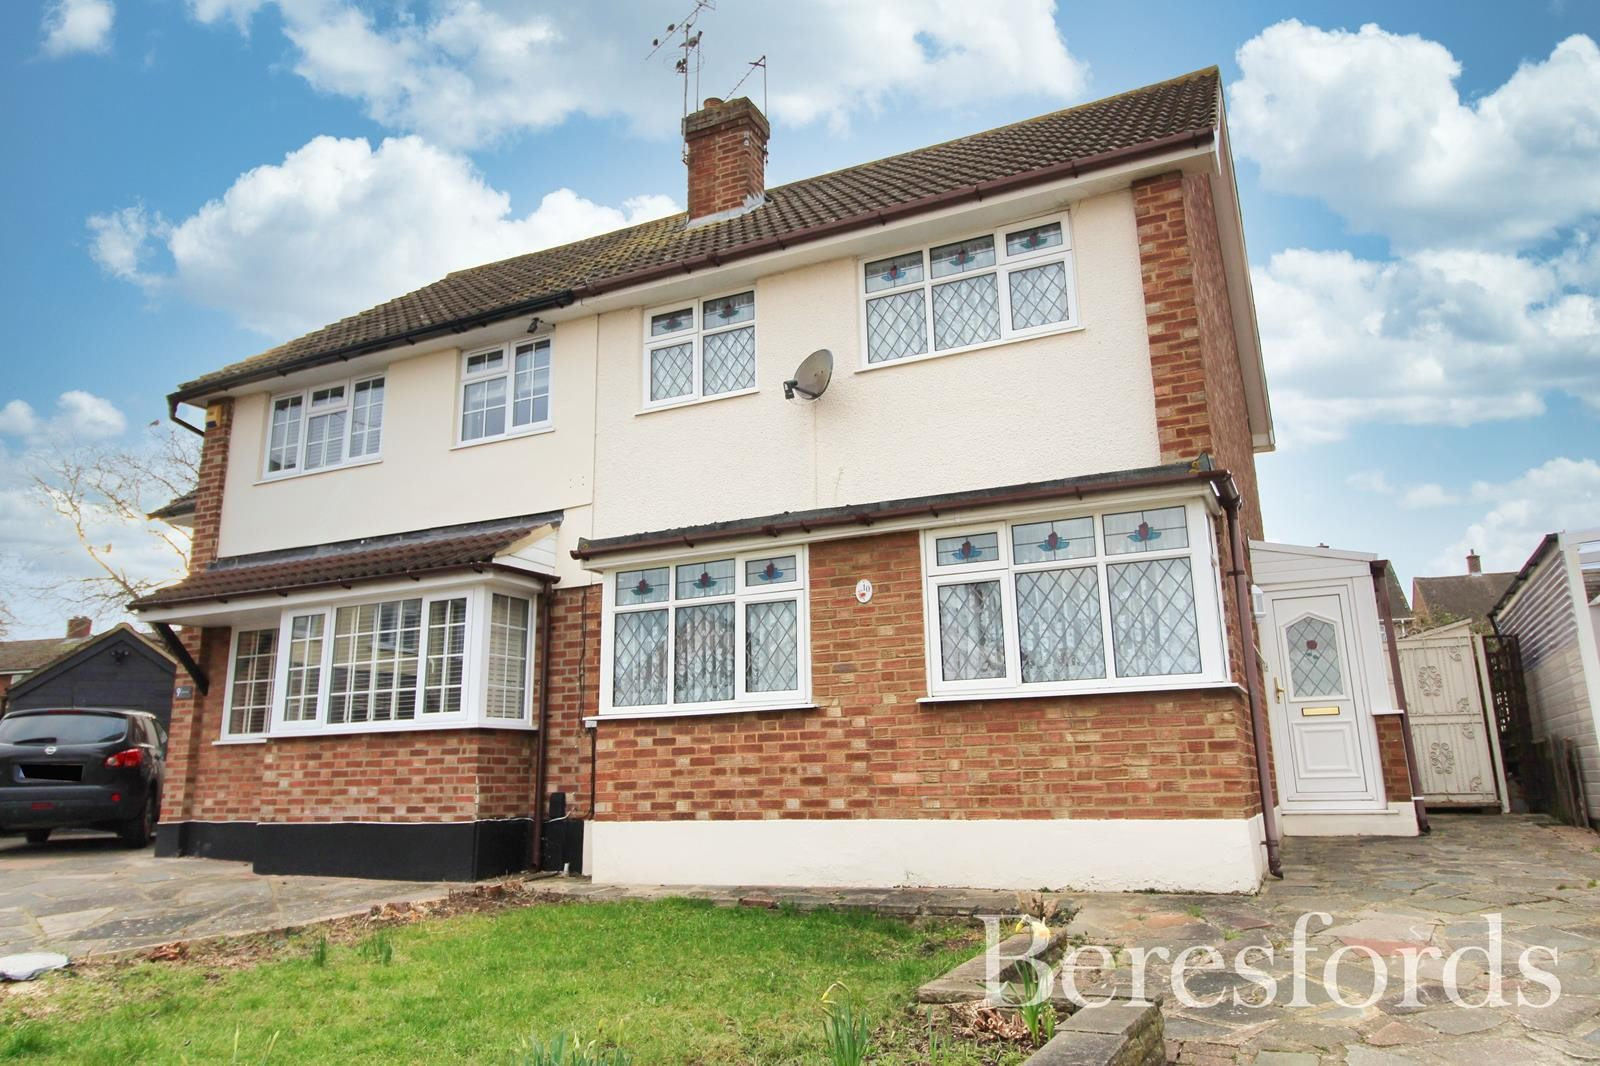 Rustic Close, Upminster, Essex, RM14